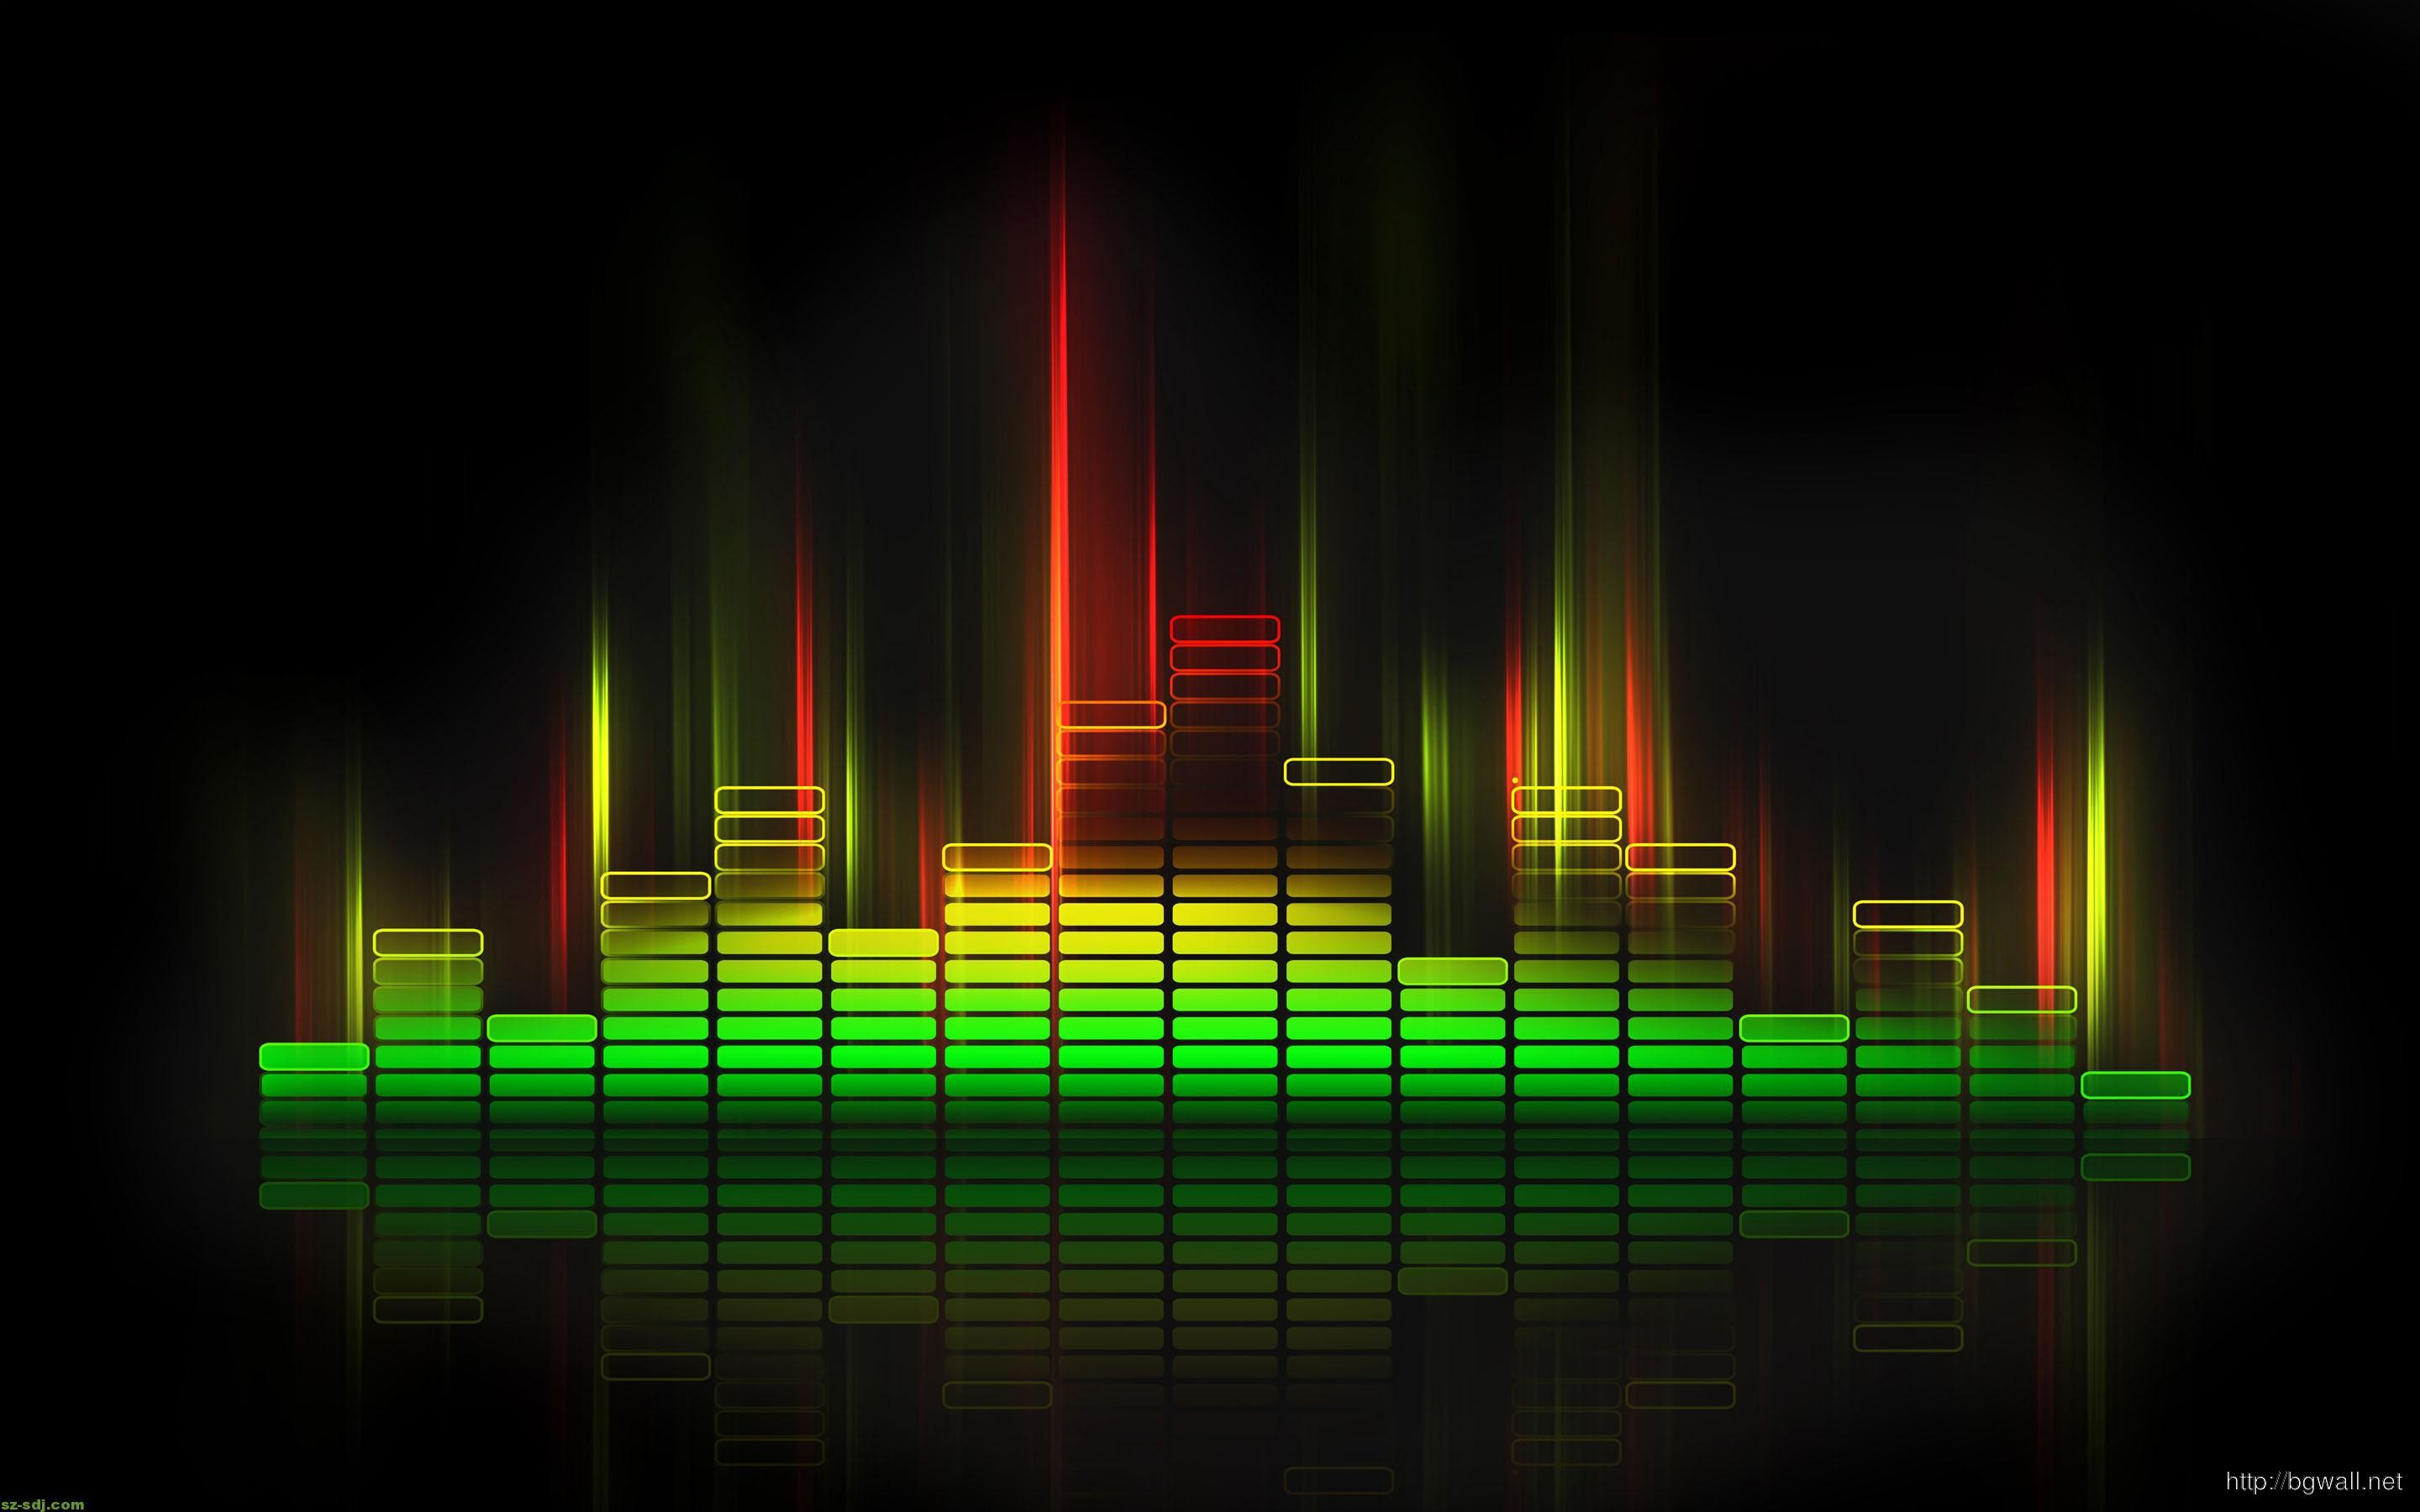 Hd Wallpapers 1080p Music: Music Background ·① Download Free HD Wallpapers For